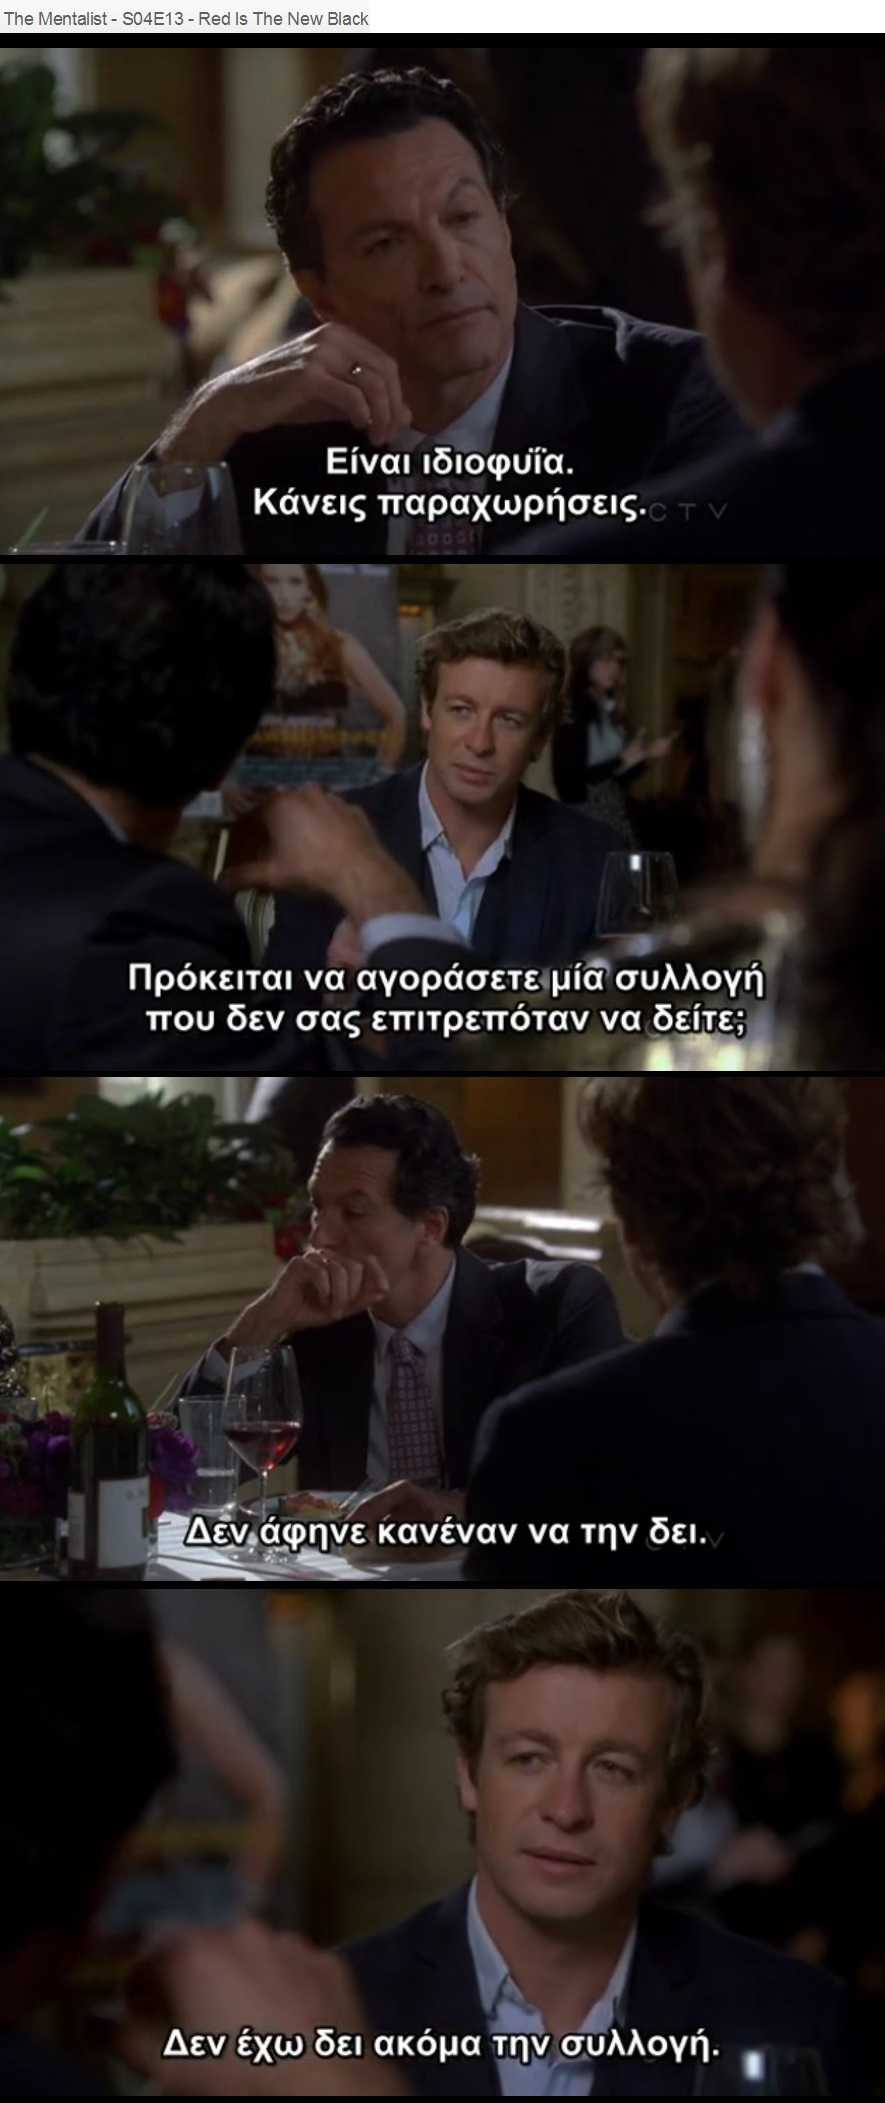 THE MENTALIST S04E13 RED IS NEW BLACK 01 100915